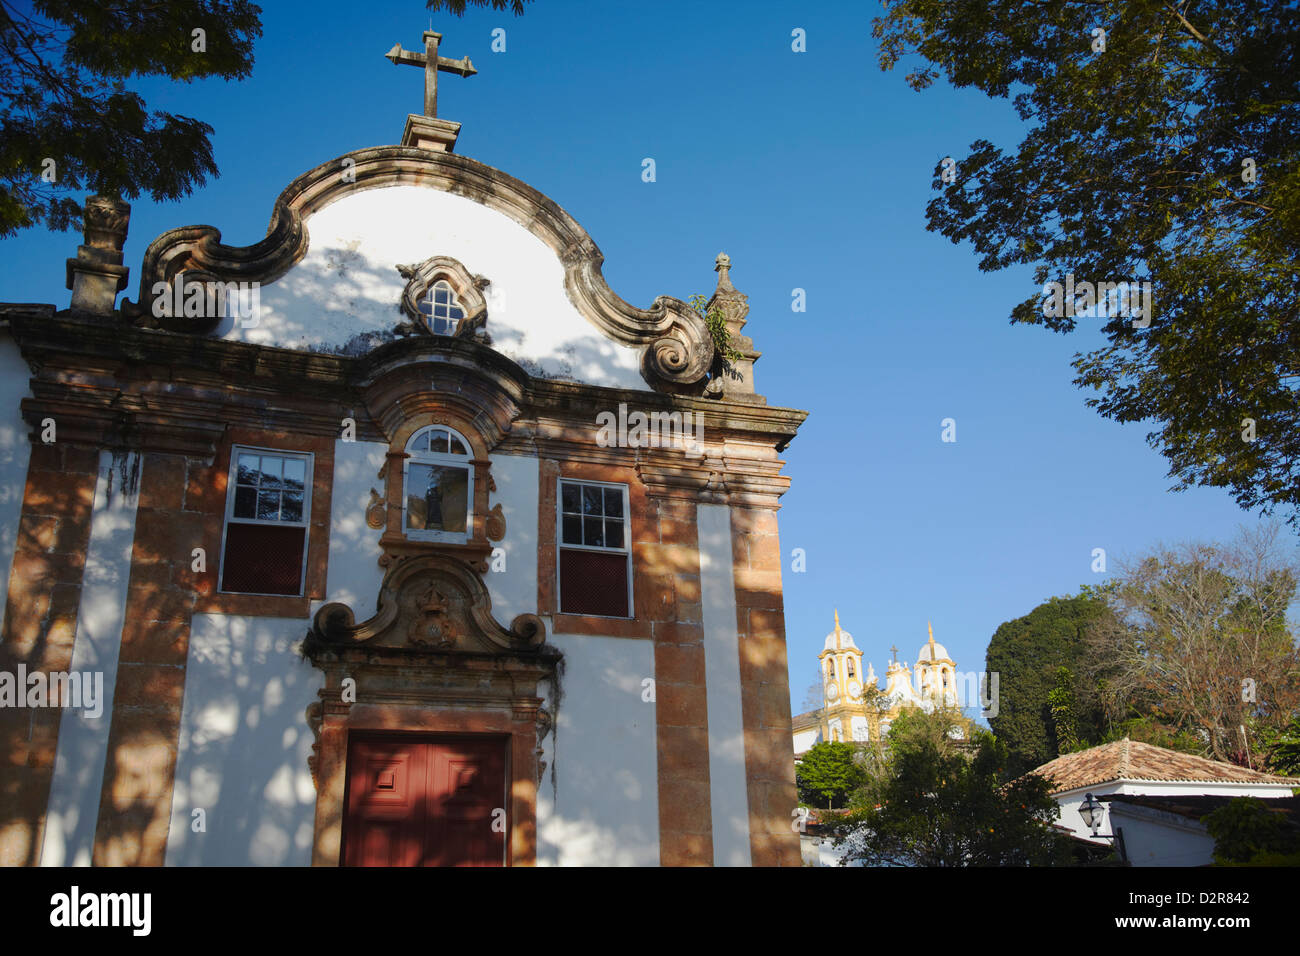 Our Lady Rosario dos Pretos and Matriz de Santo Antonio churches, Tiradentes, Minas Gerais, Brazil, South America - Stock Image